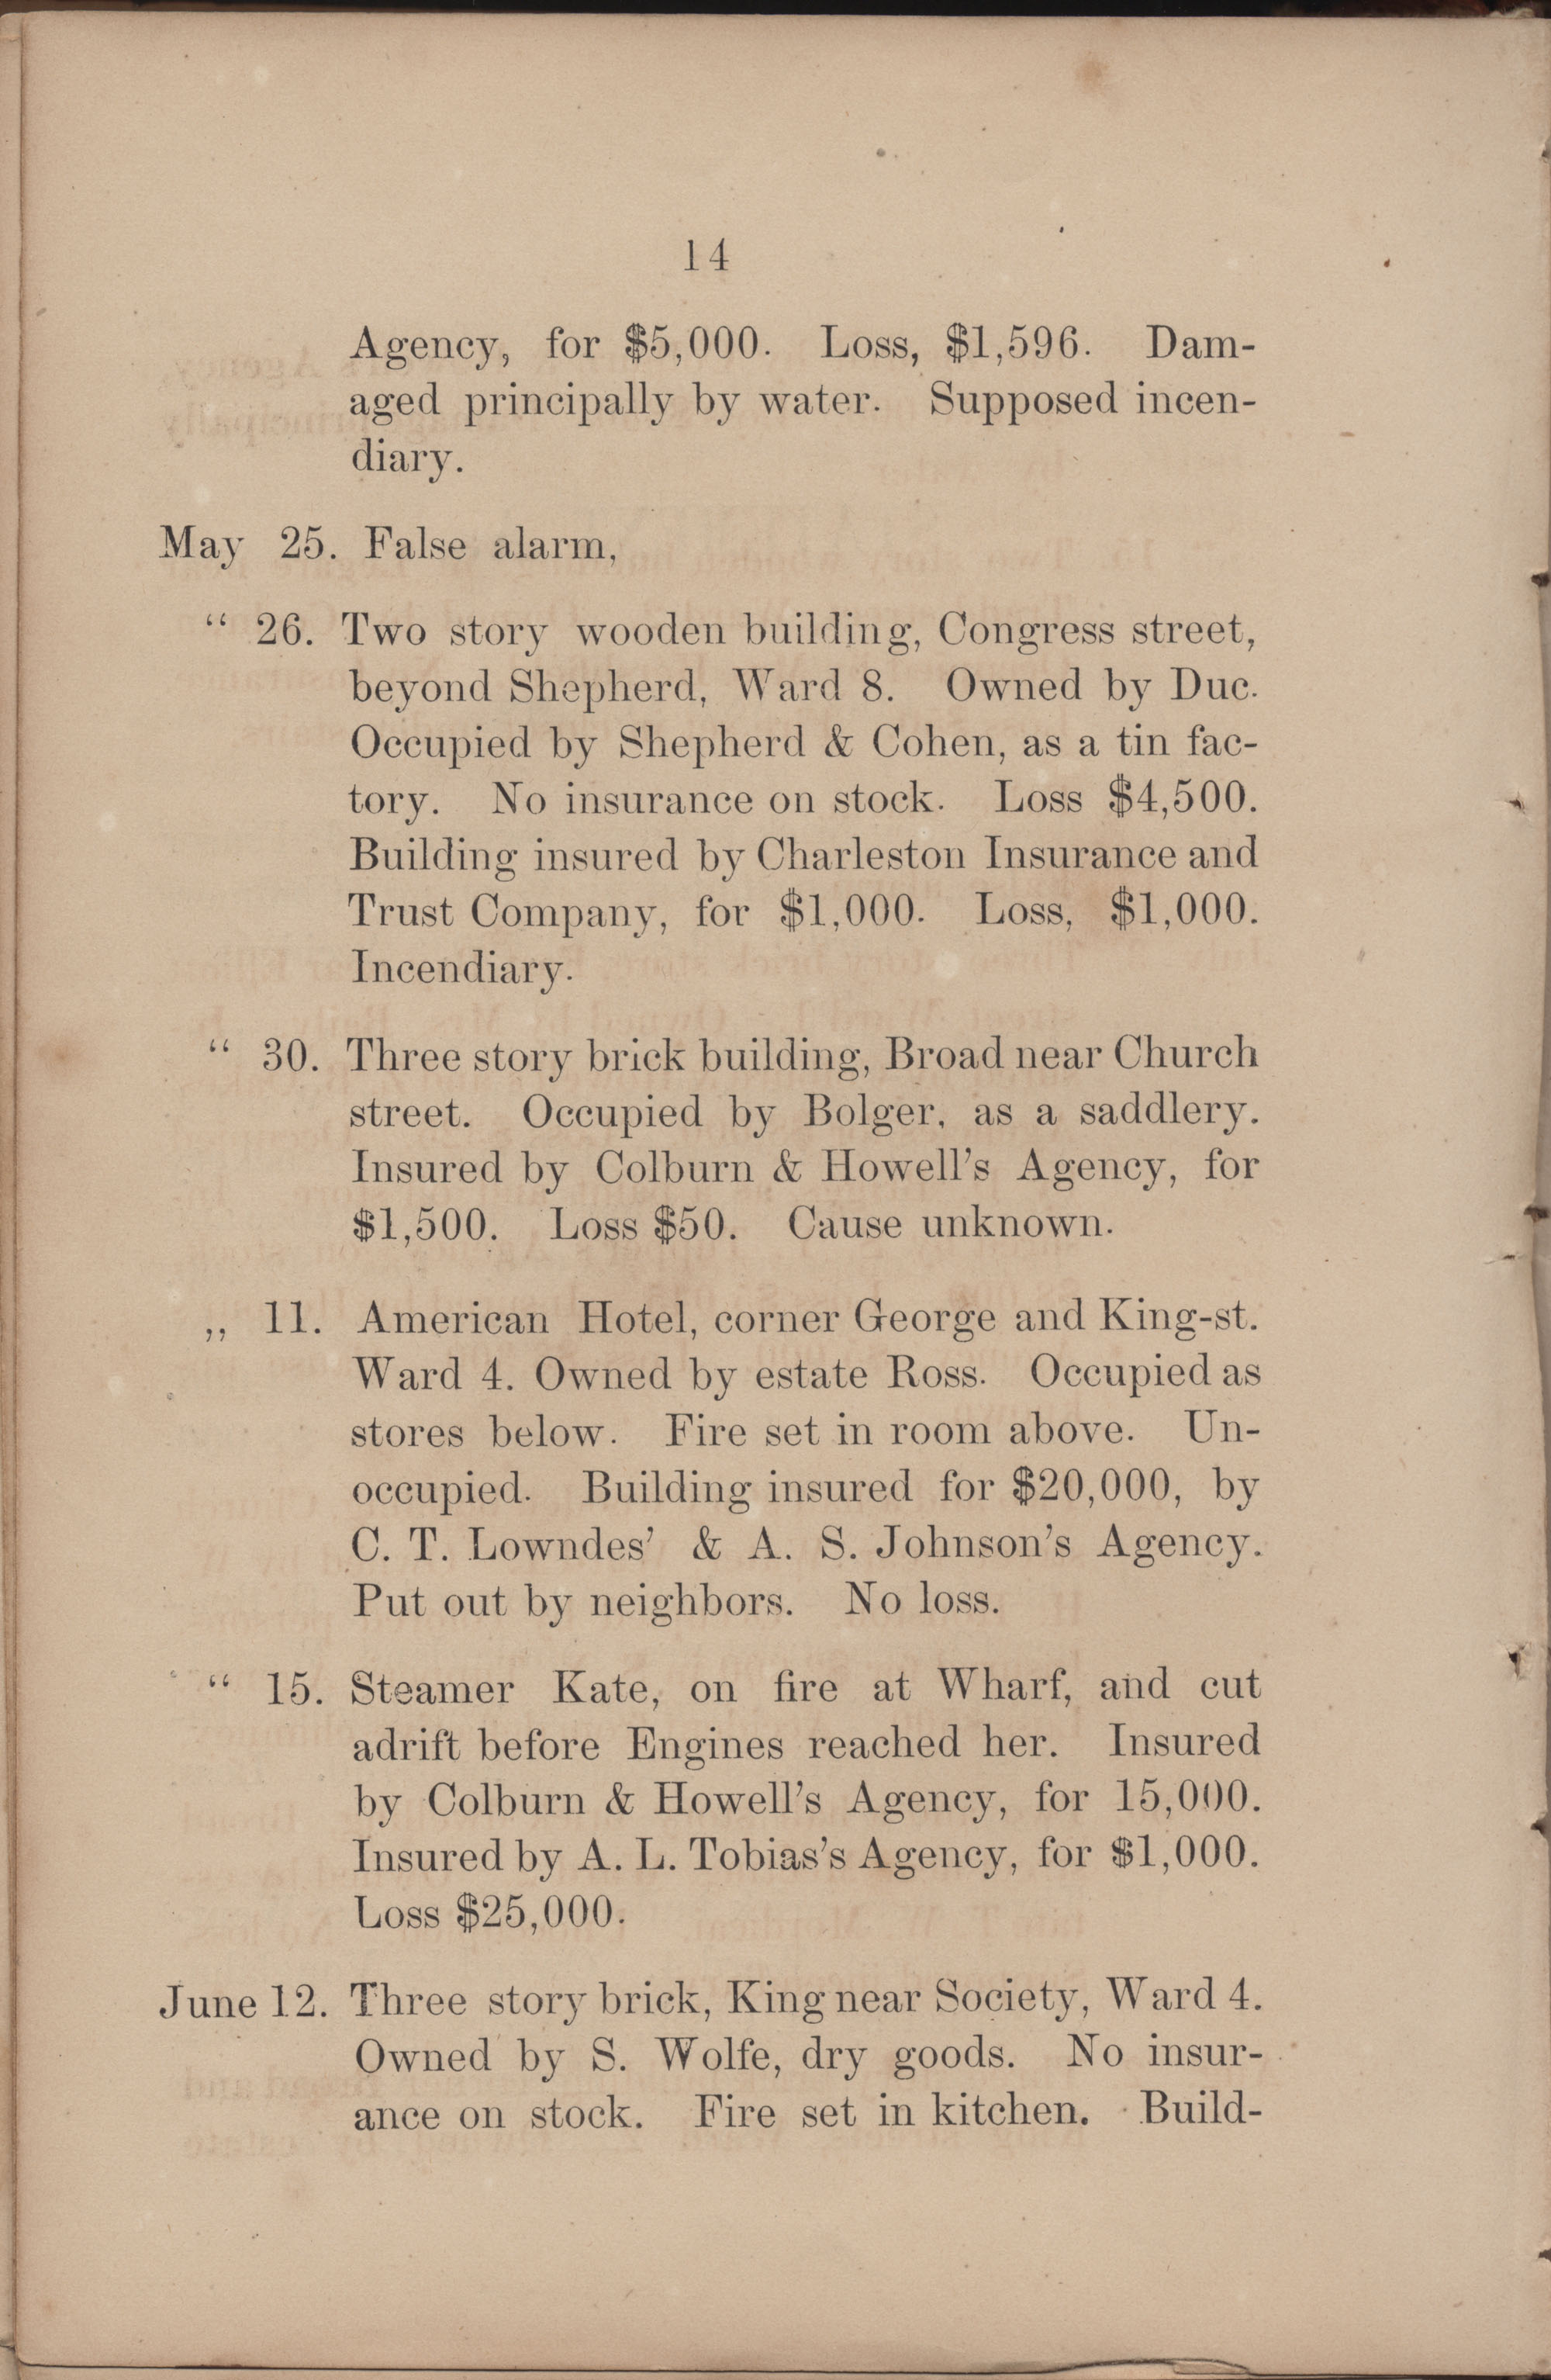 Annual Report of the Chief of the Fire Department of the City of Charleston, page 192